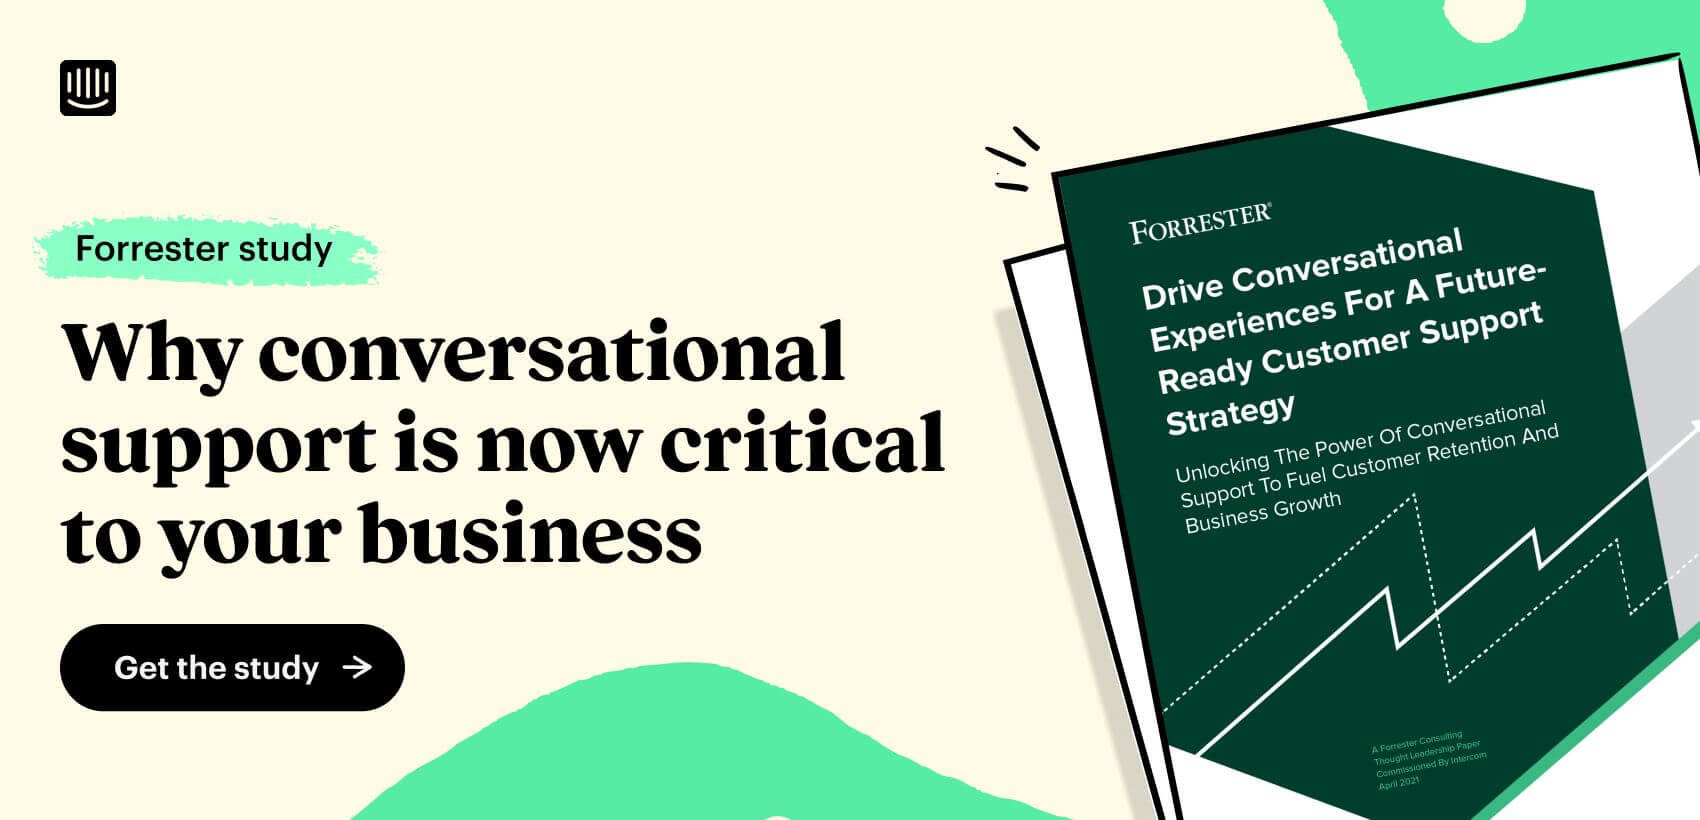 Why conversational support is now critical to your business –get the report